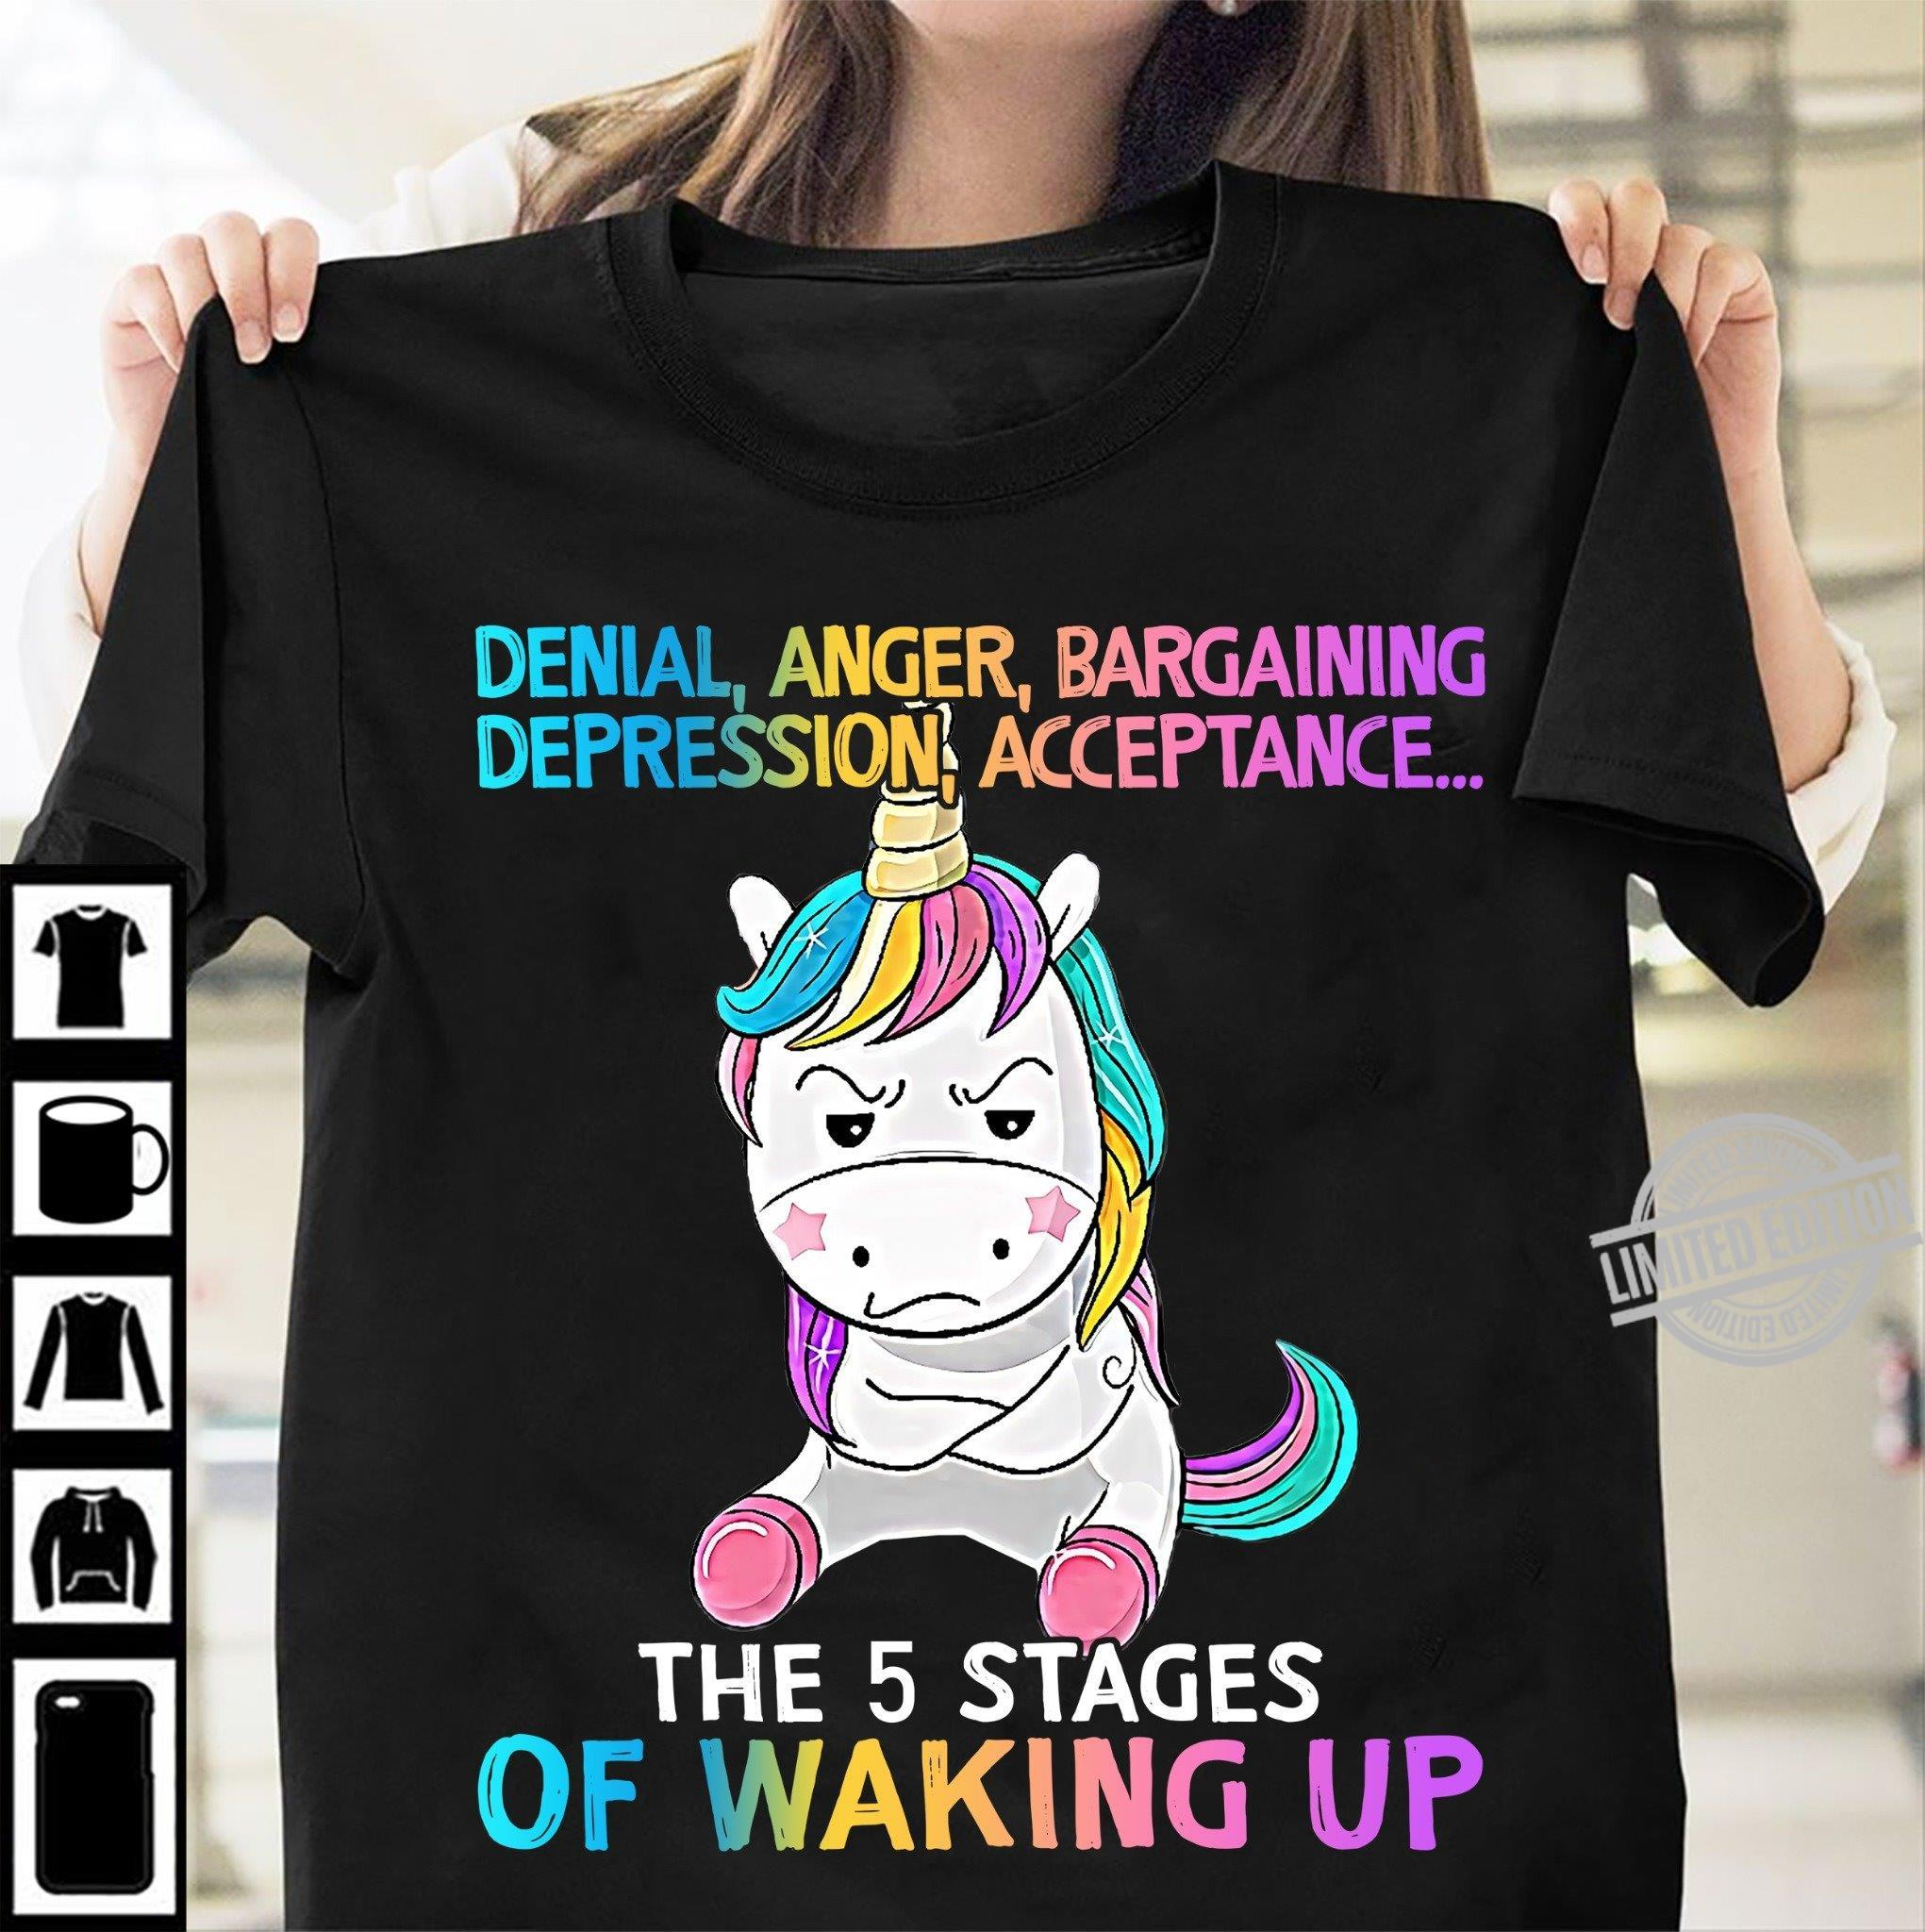 Denial Anger Bargaining Depression Acceptance The 5 Stages Of Waking Up Shirt